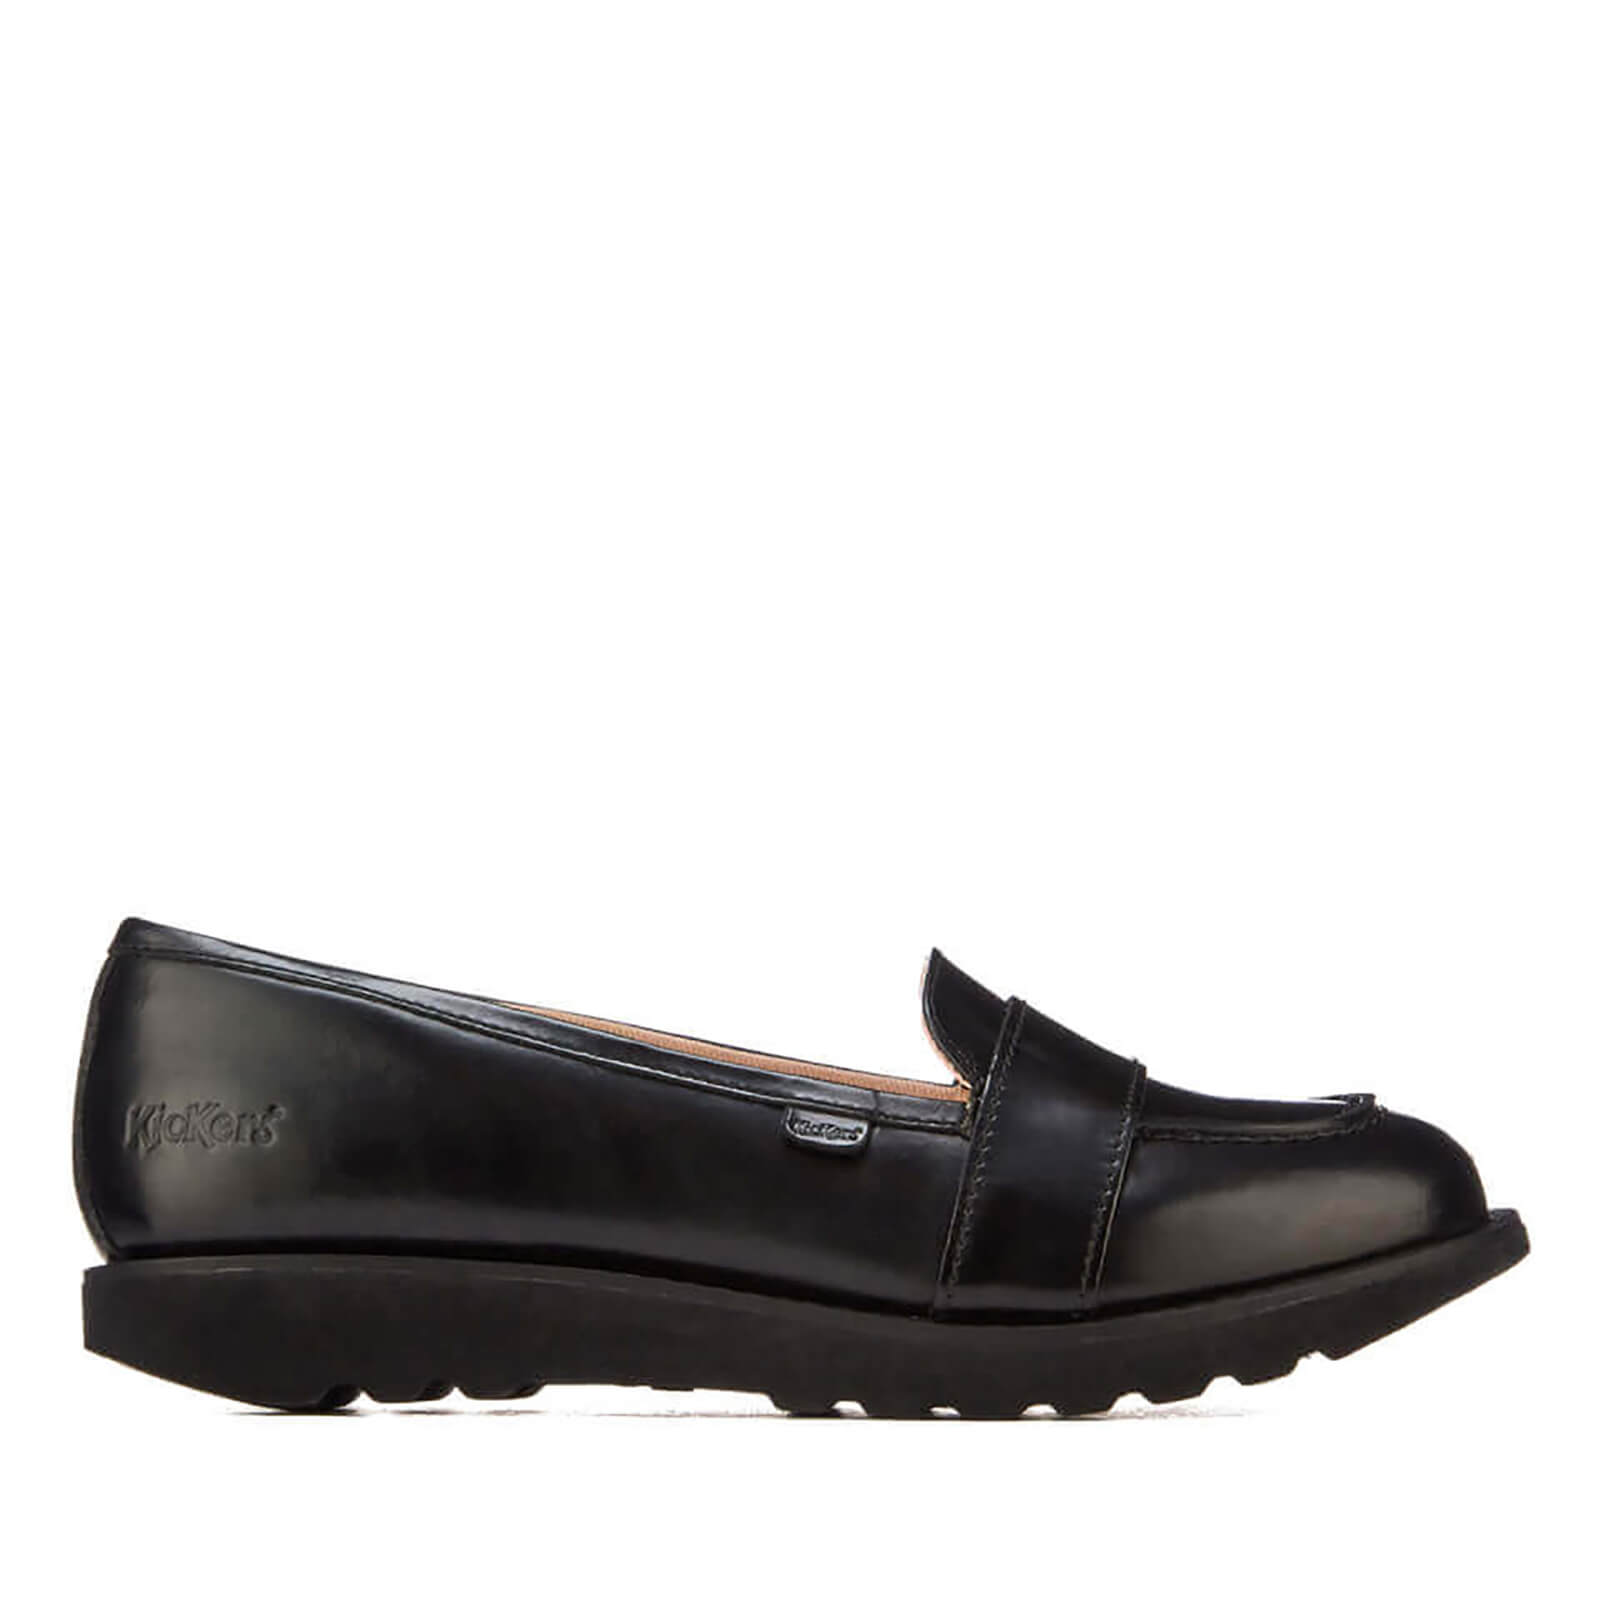 776f5d94712 Kickers Women s Kick C Lite Strap Loafers - Black Womens Footwear ...